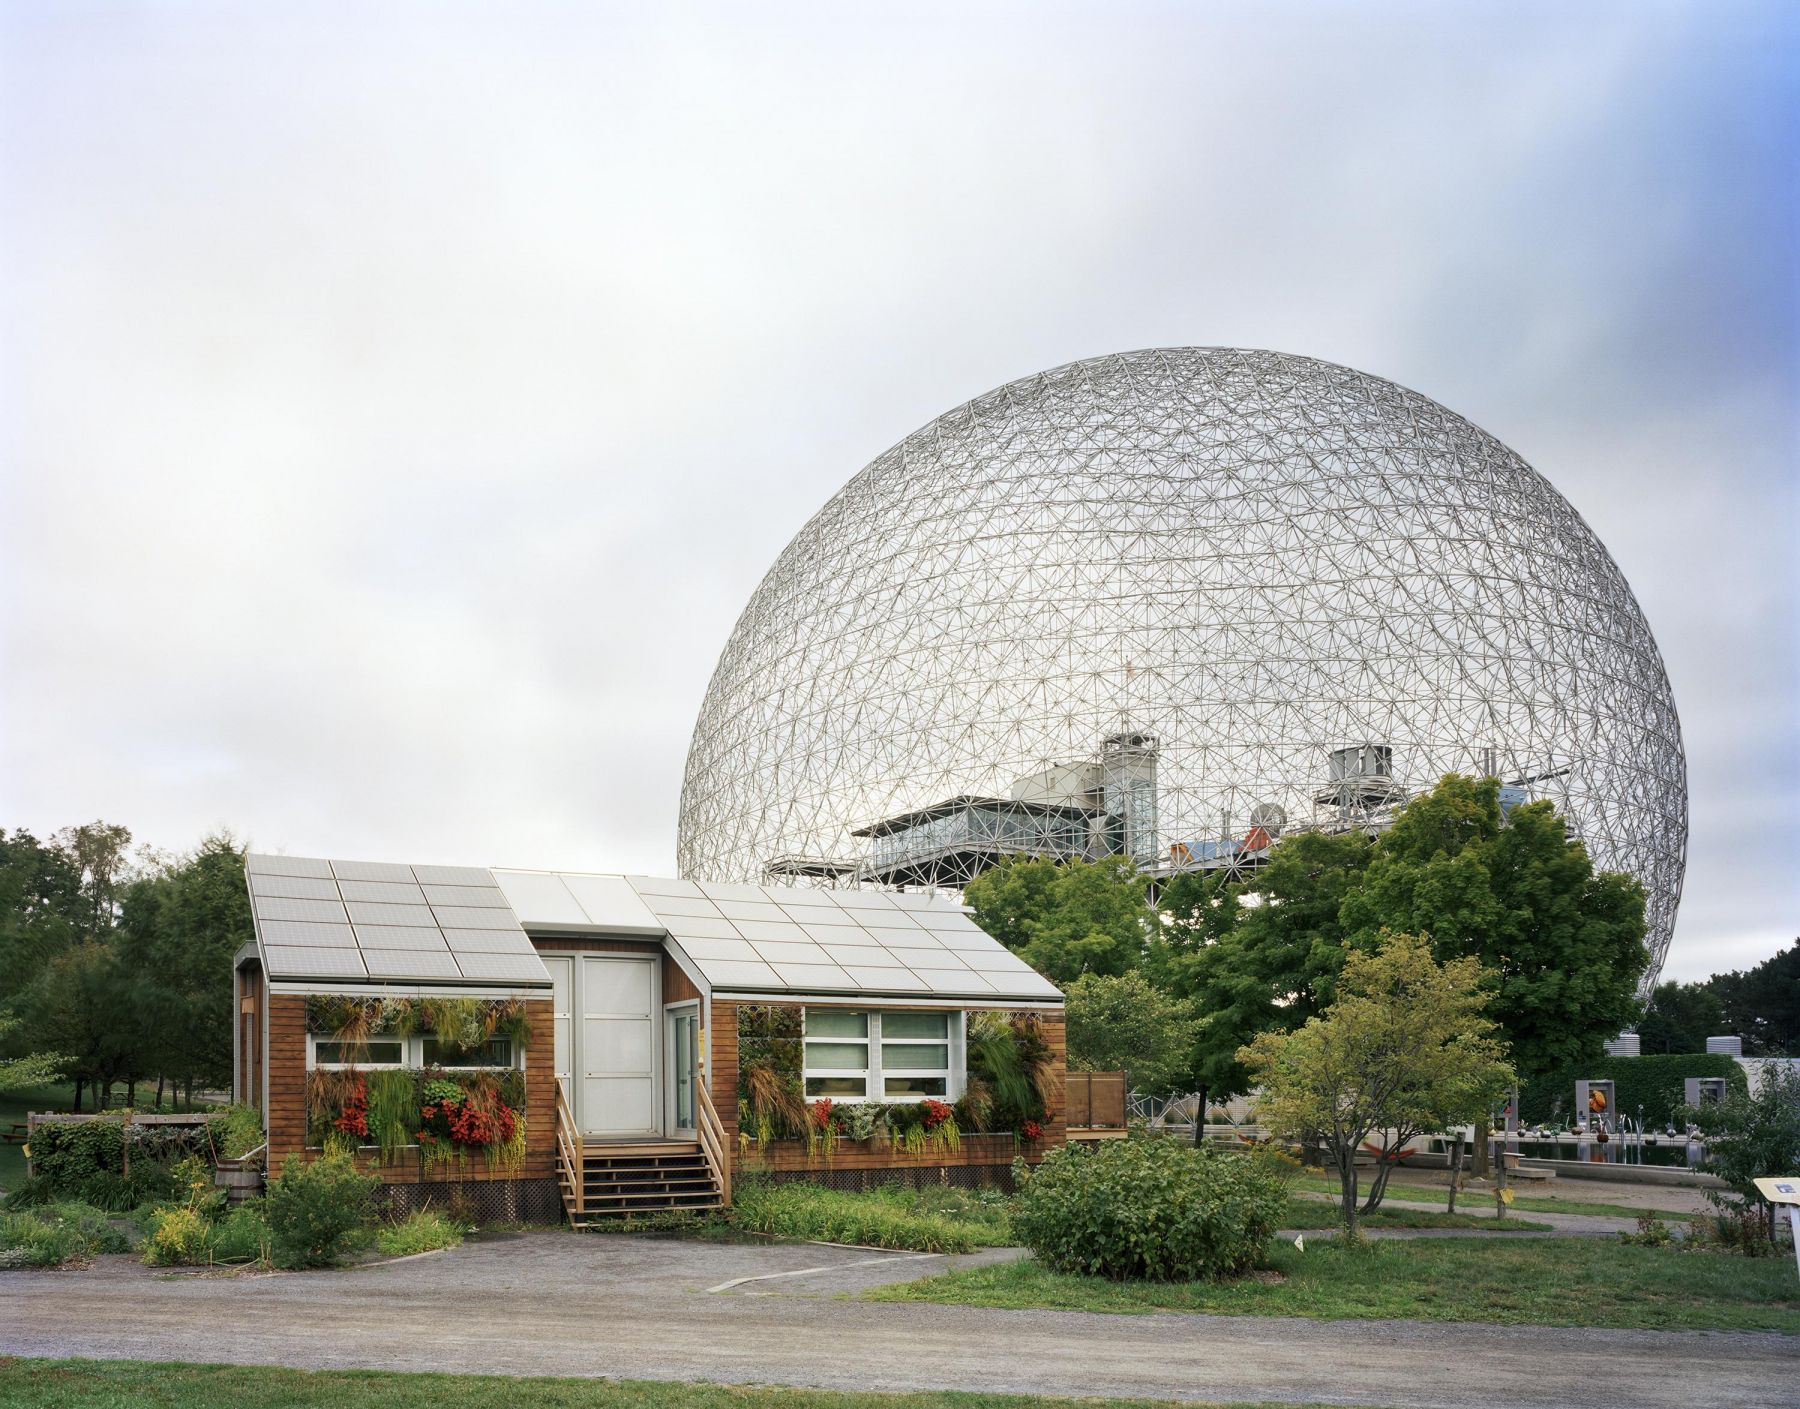 Jade Doskow  Montreal 1967 World's Fair, Man and His World, Buckminster Fuller's Geodesic Dome with Solar Experimental House, 2012  Archival Pigment Print  40h x 50w in, Photographs, Fine Art, Contemporary Art, Asheville